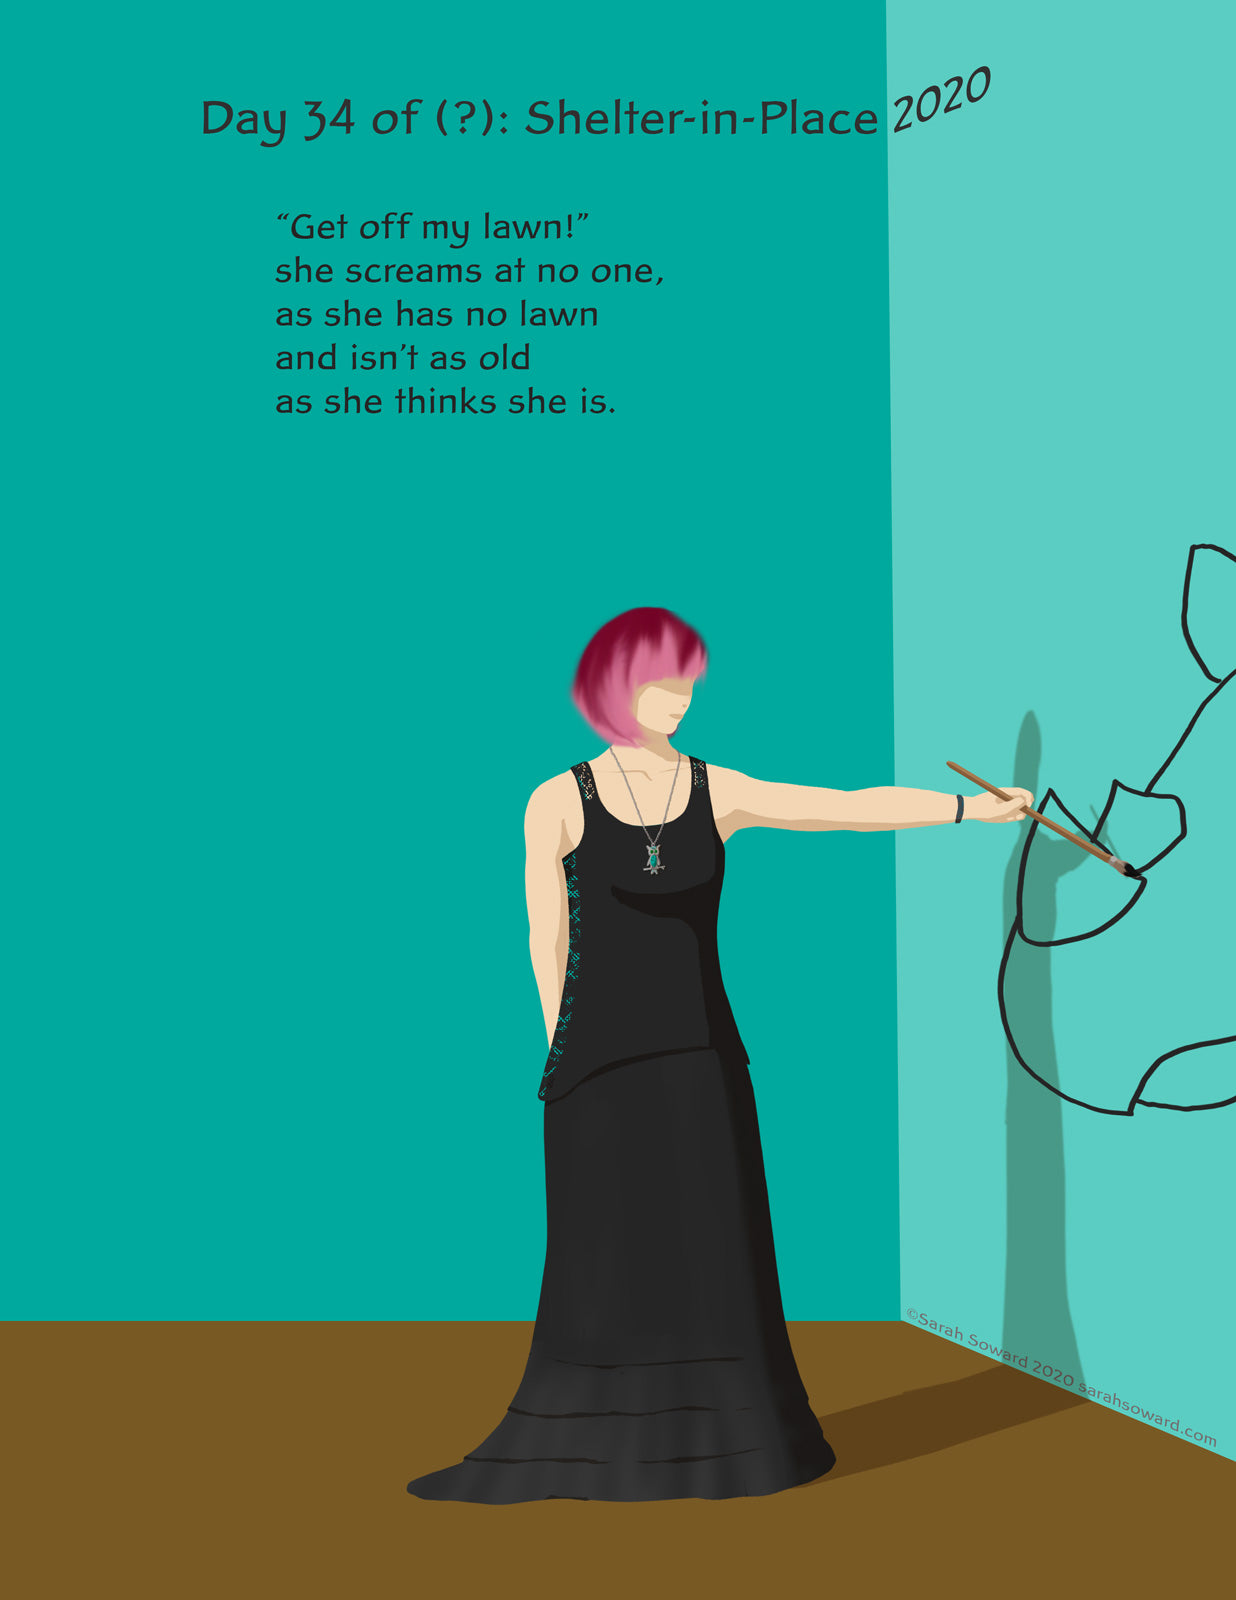 Image of a woman in black painting the outline of a rhino on a wall. The text on the image reads, Get off my lawn!she screams at no one, as she has no lawn and isn't as old as she thinks she is.